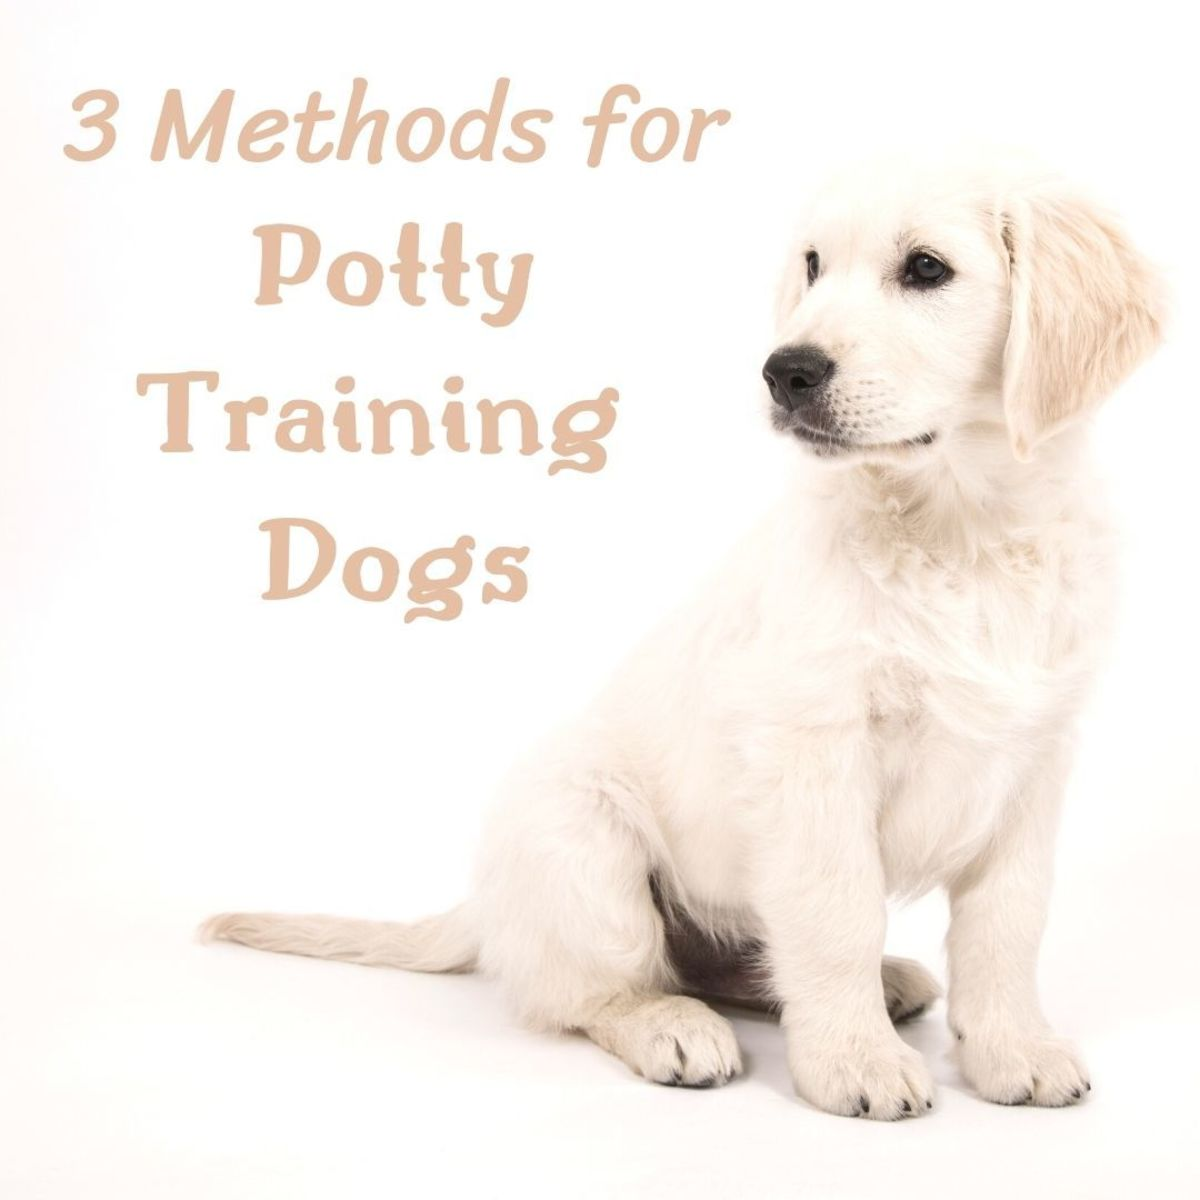 Potty training dogs is tough work—here are a few techniques that will help you housetrain your pup!